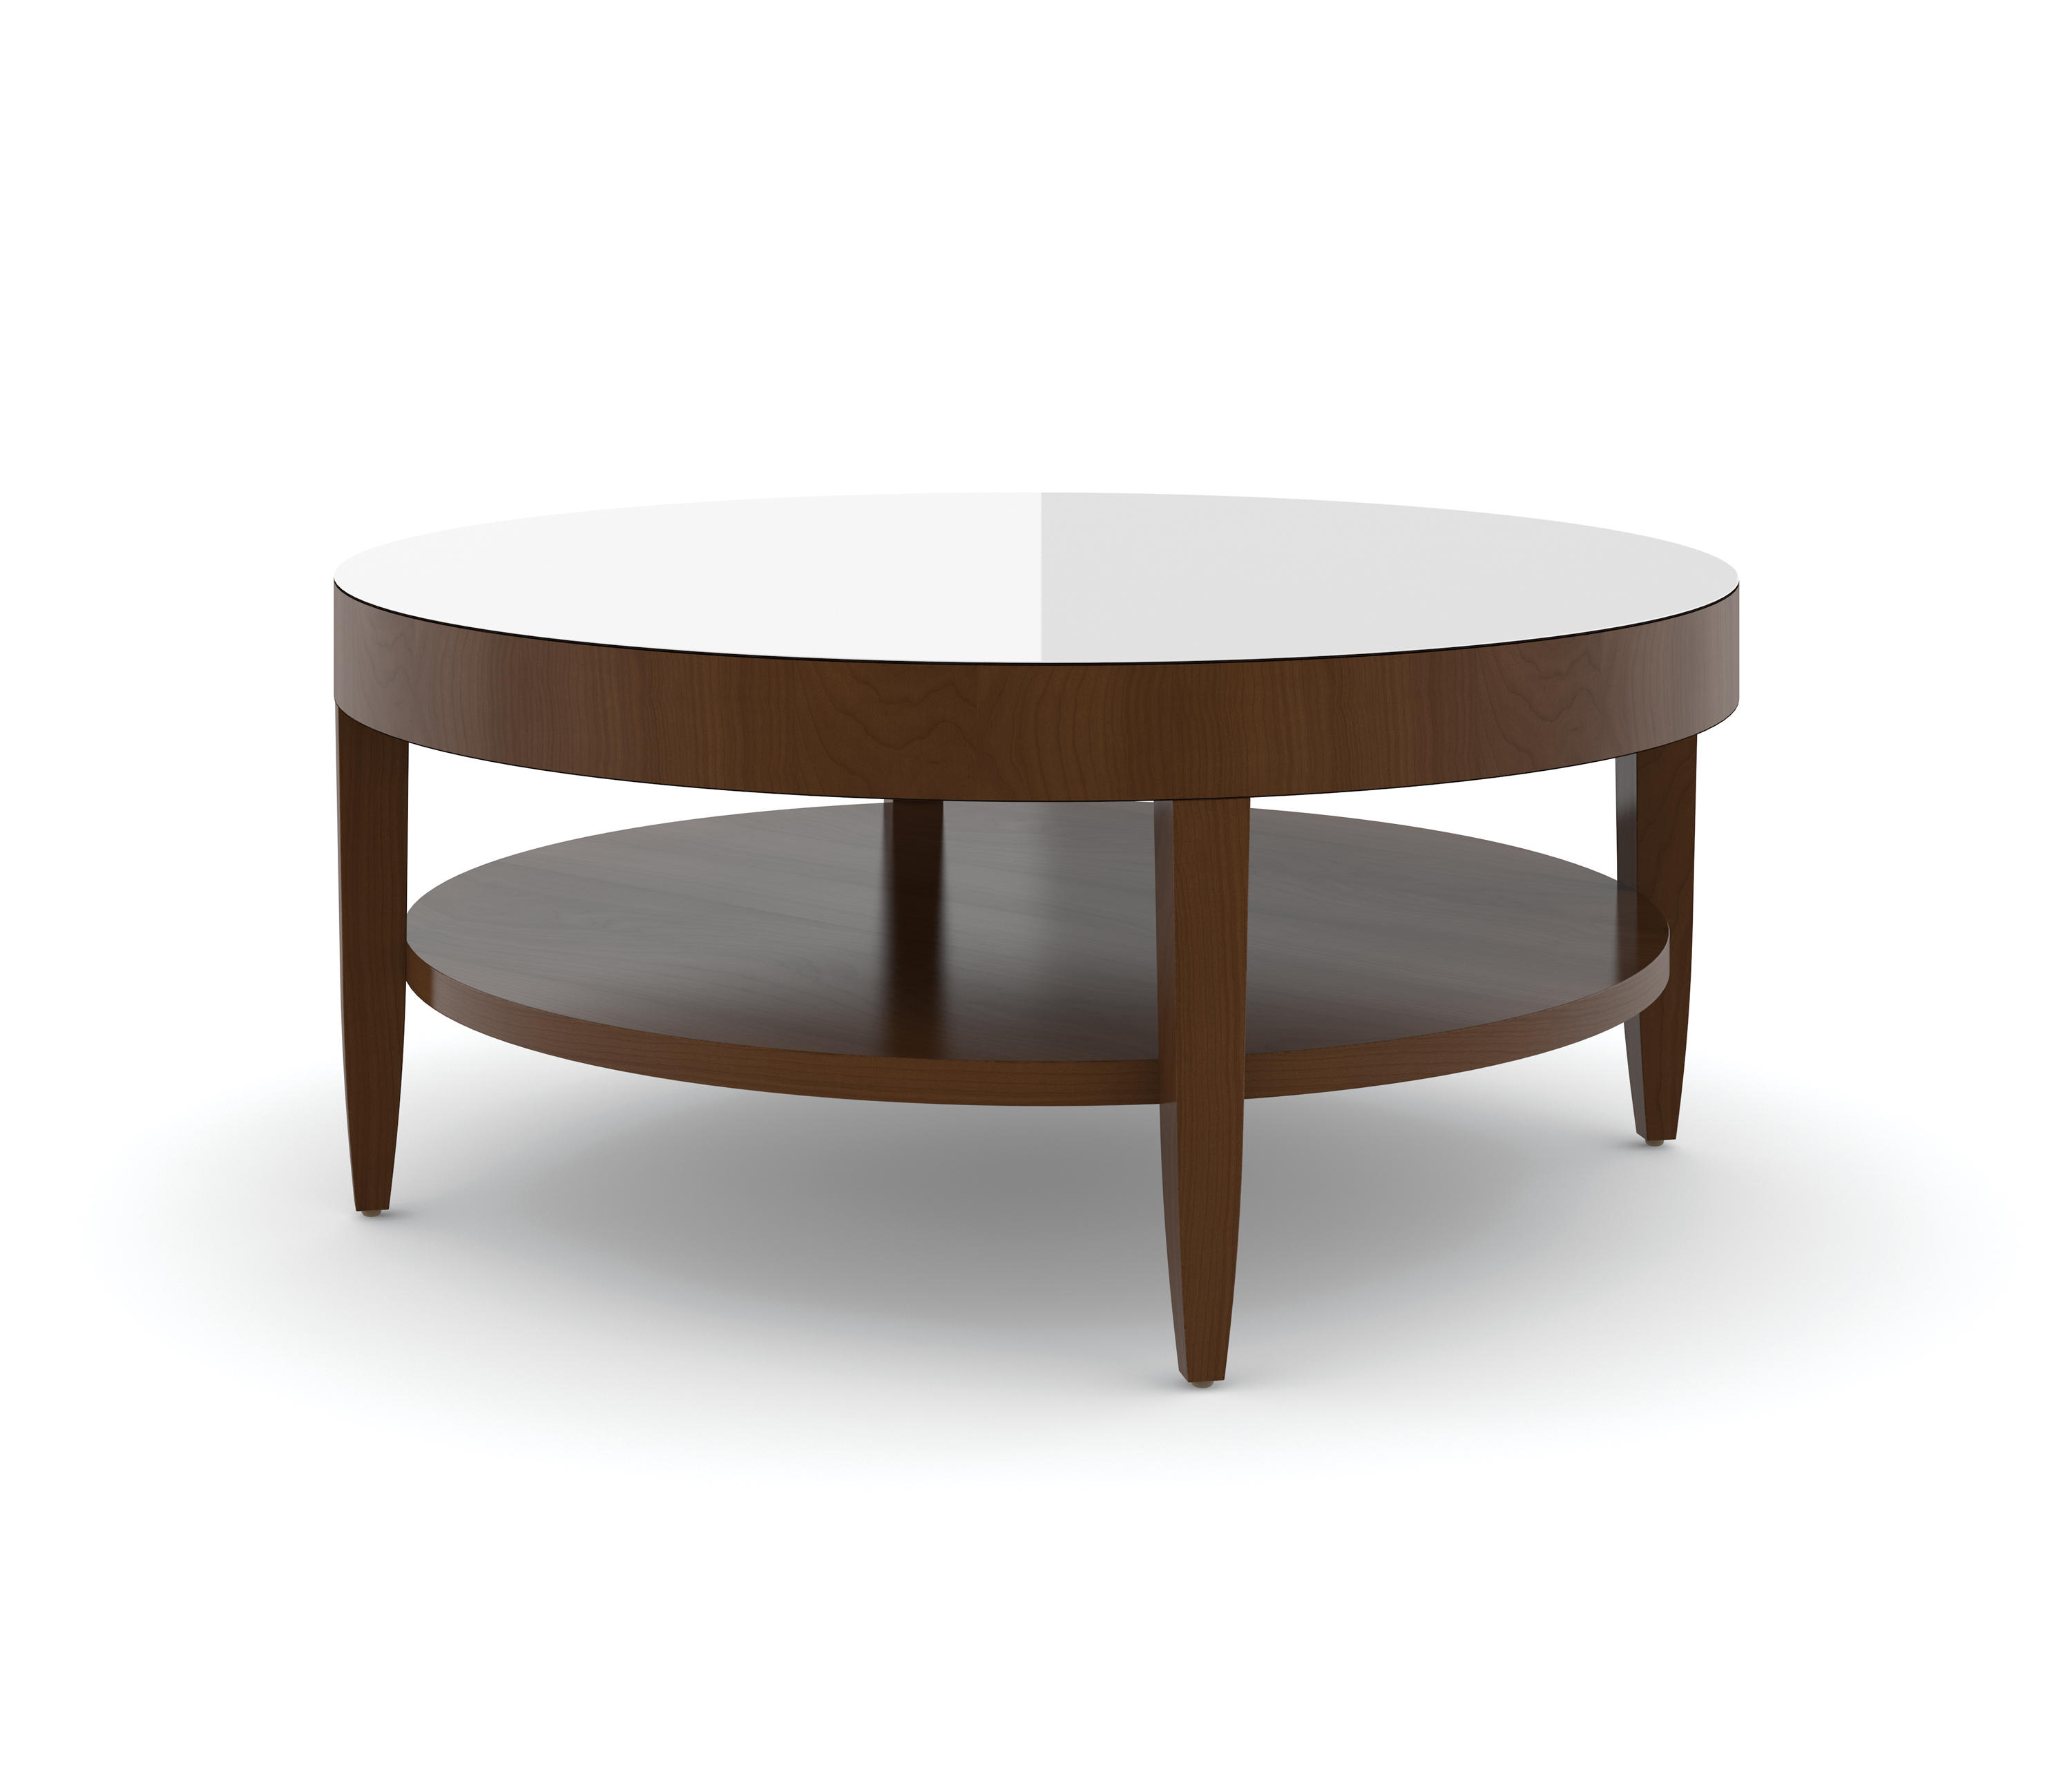 Habitat Herrmann Square Glass Coffee Table: EDGE TABLE, ROUND COFFEE TABLE / ETCHED TEMPERED GLASS